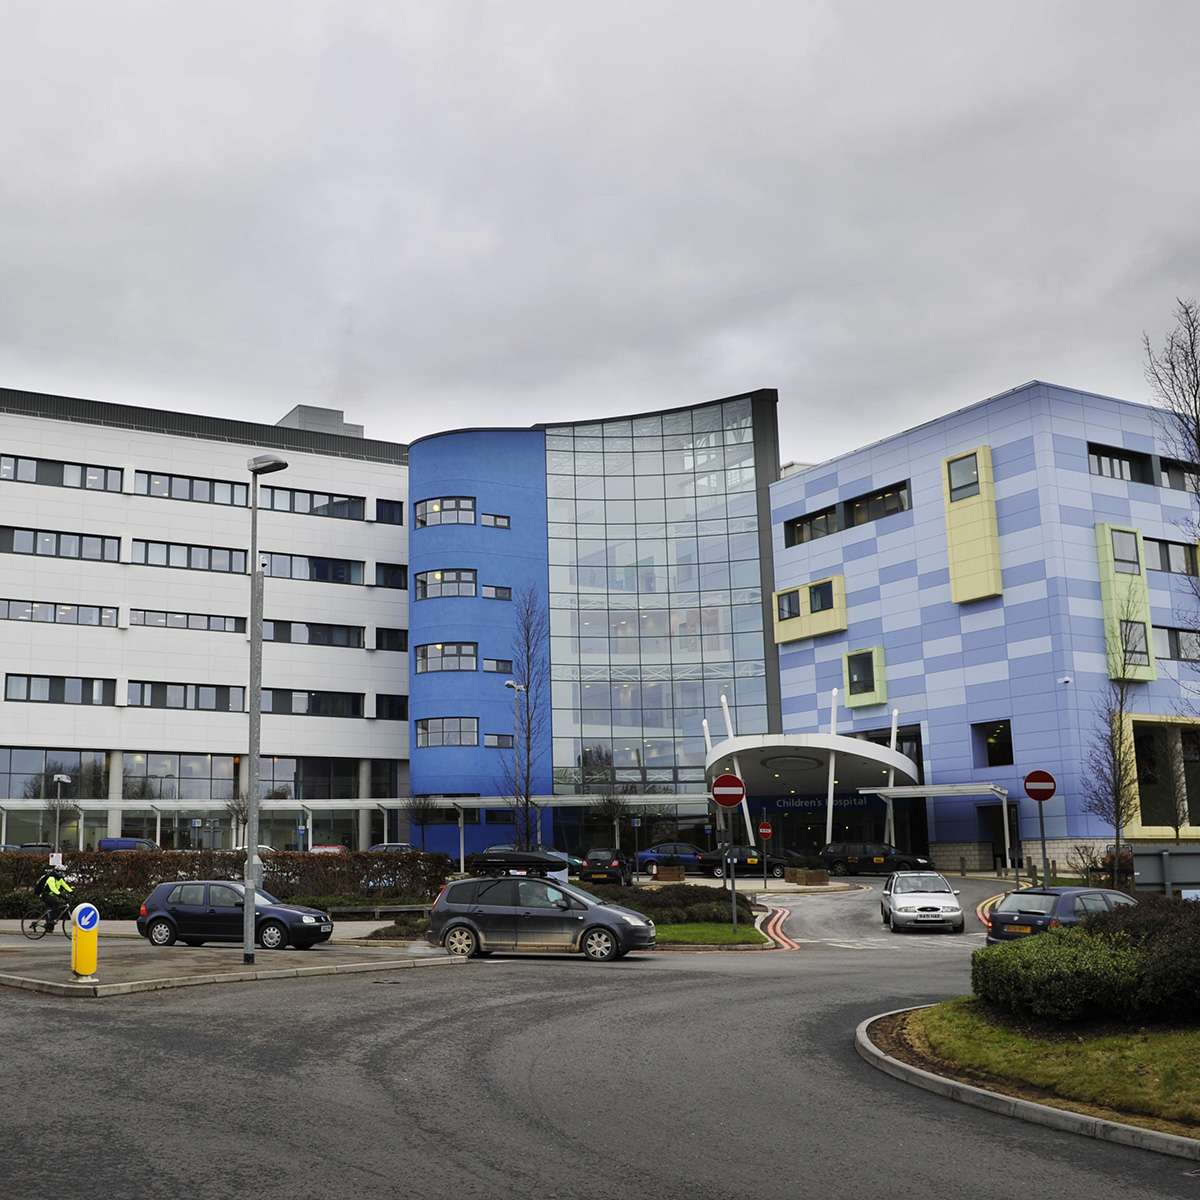 One man was taken to Oxford's John Radcliffe Hospital